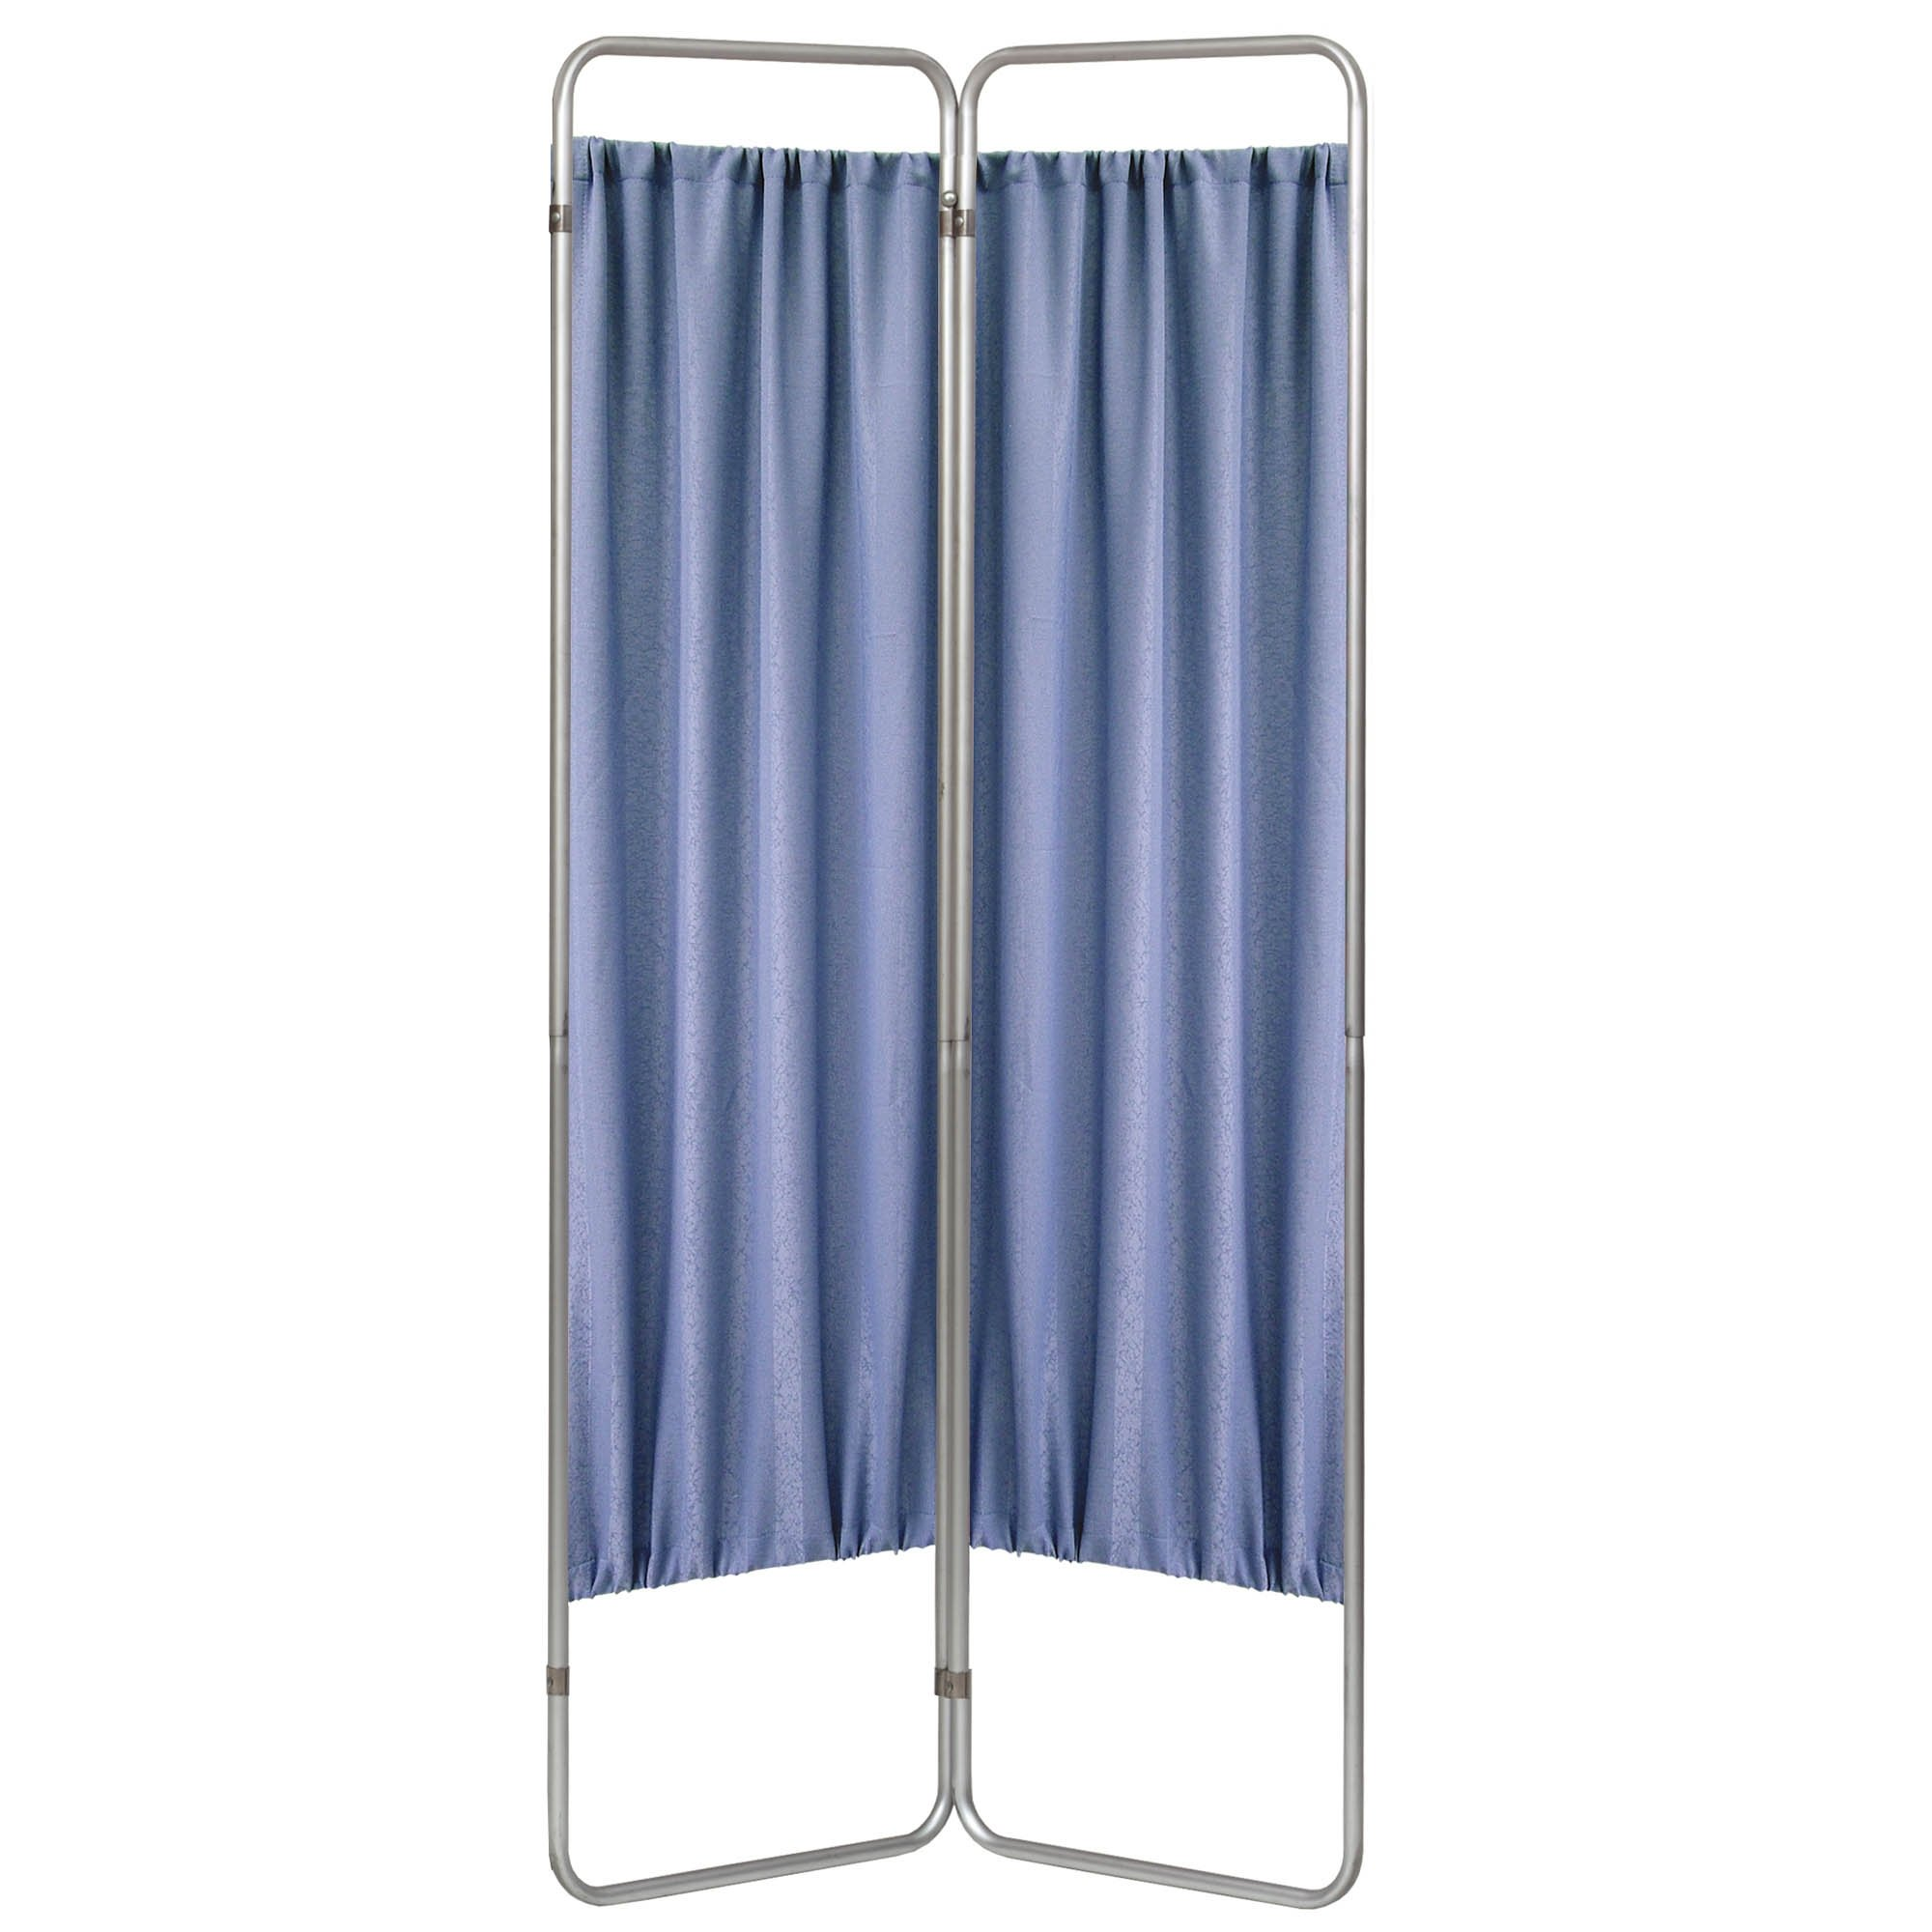 Economy 2 Section Folding Privacy Screen - Norway Designer Cloth Screen Panel